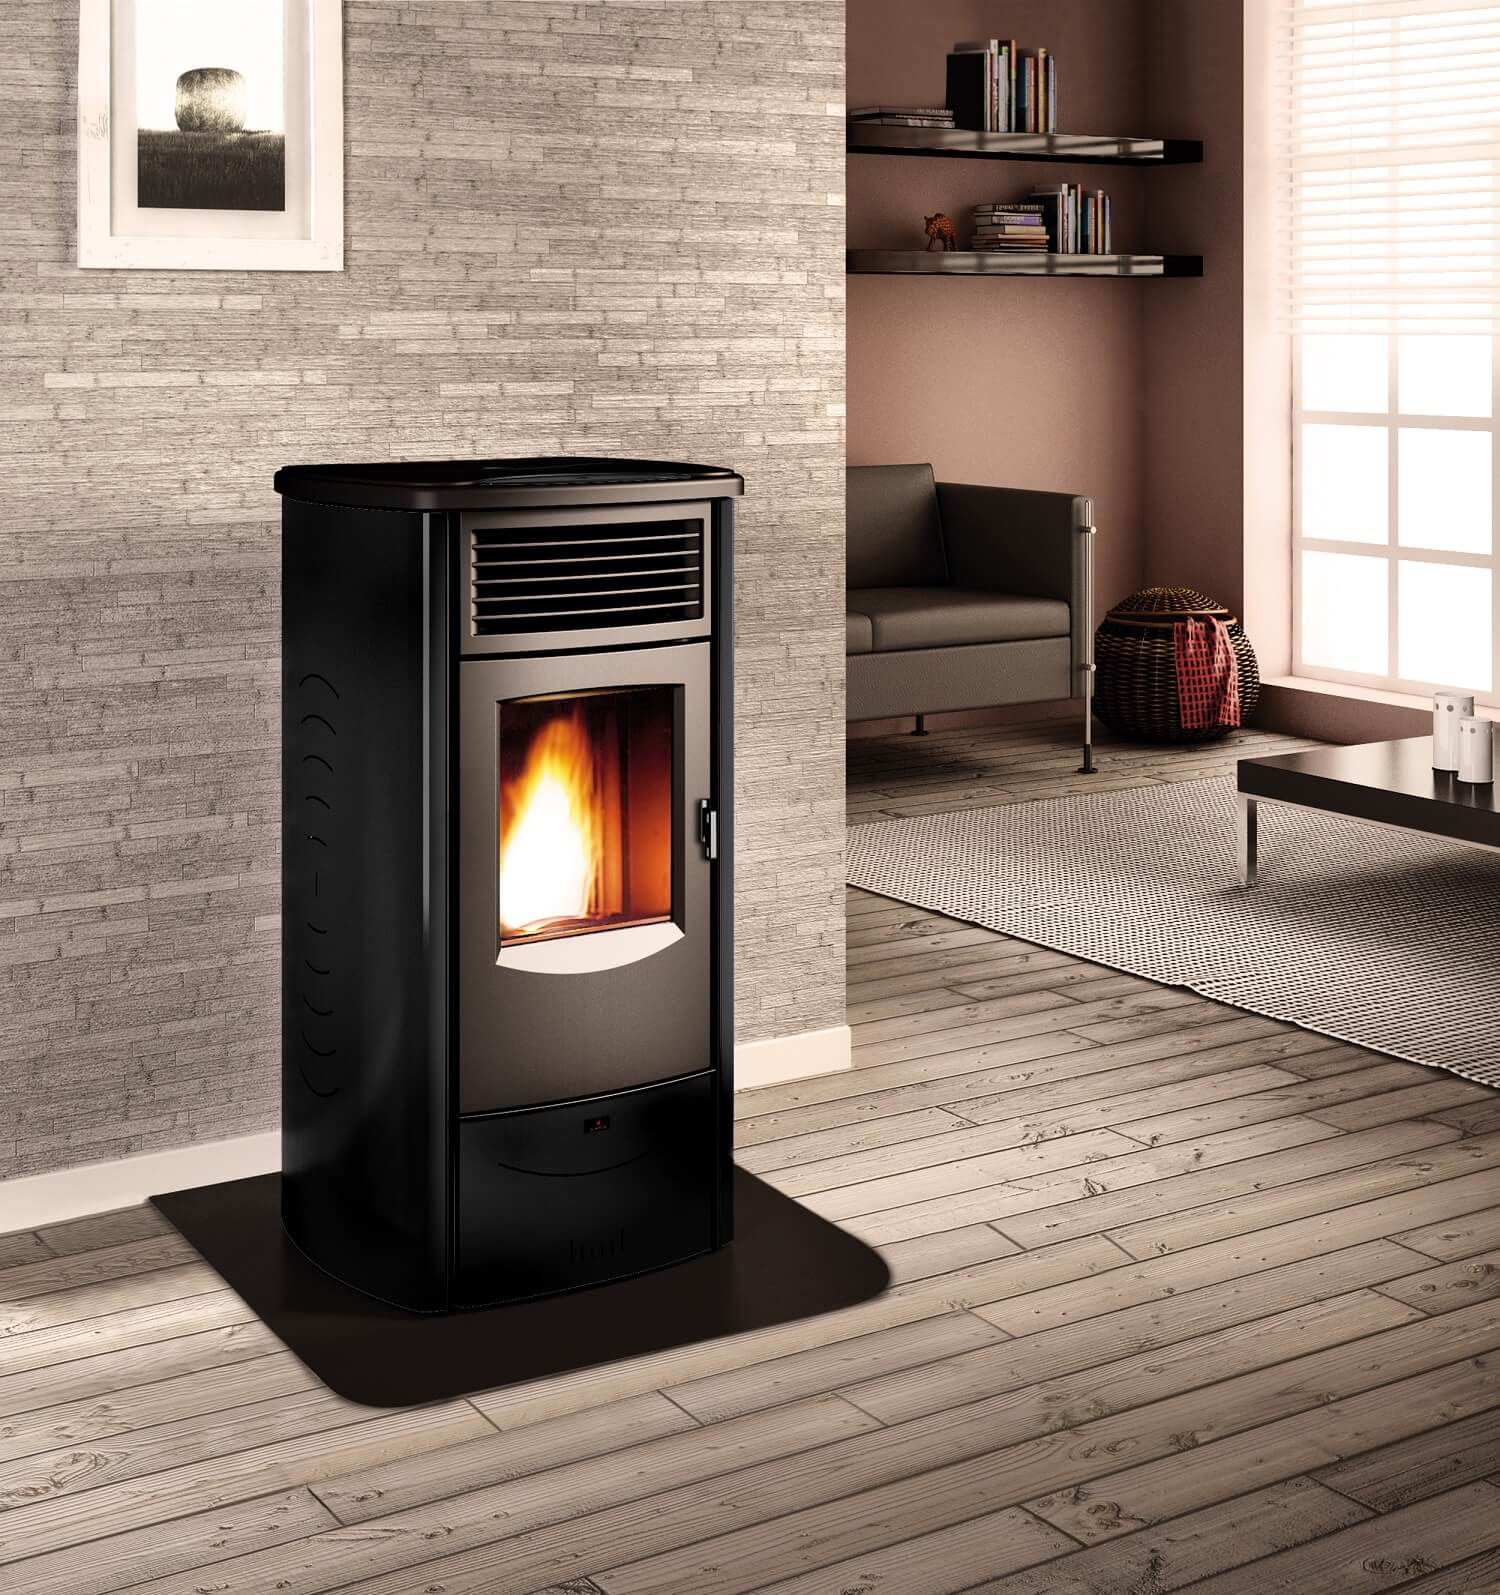 bosca spirit 500 pellet stove poele aux granules pinterest pellet stove wood stoves and woods